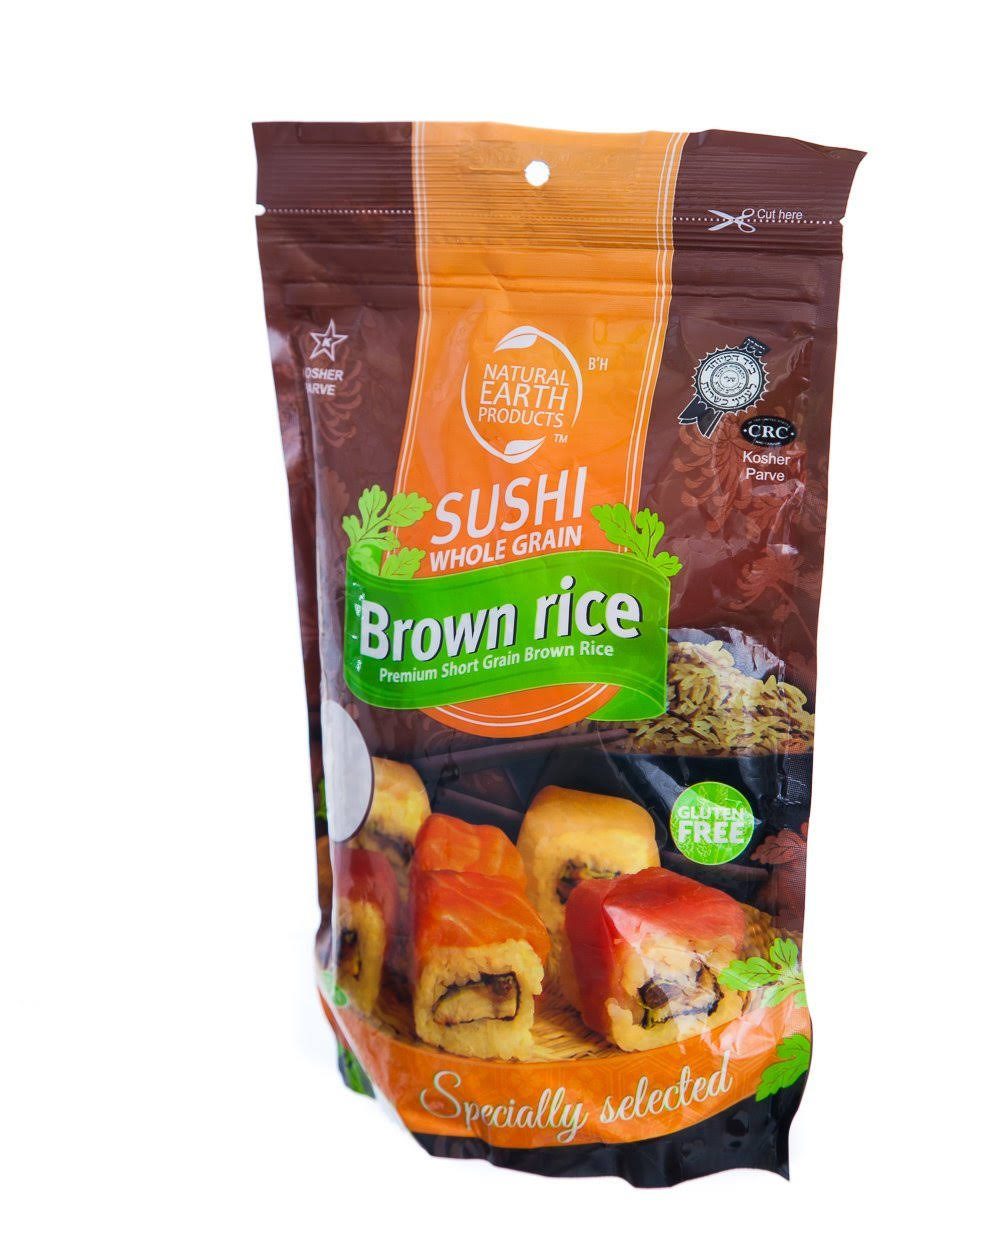 Natural Earth Rice Sushi Whole Grain Brown Rice